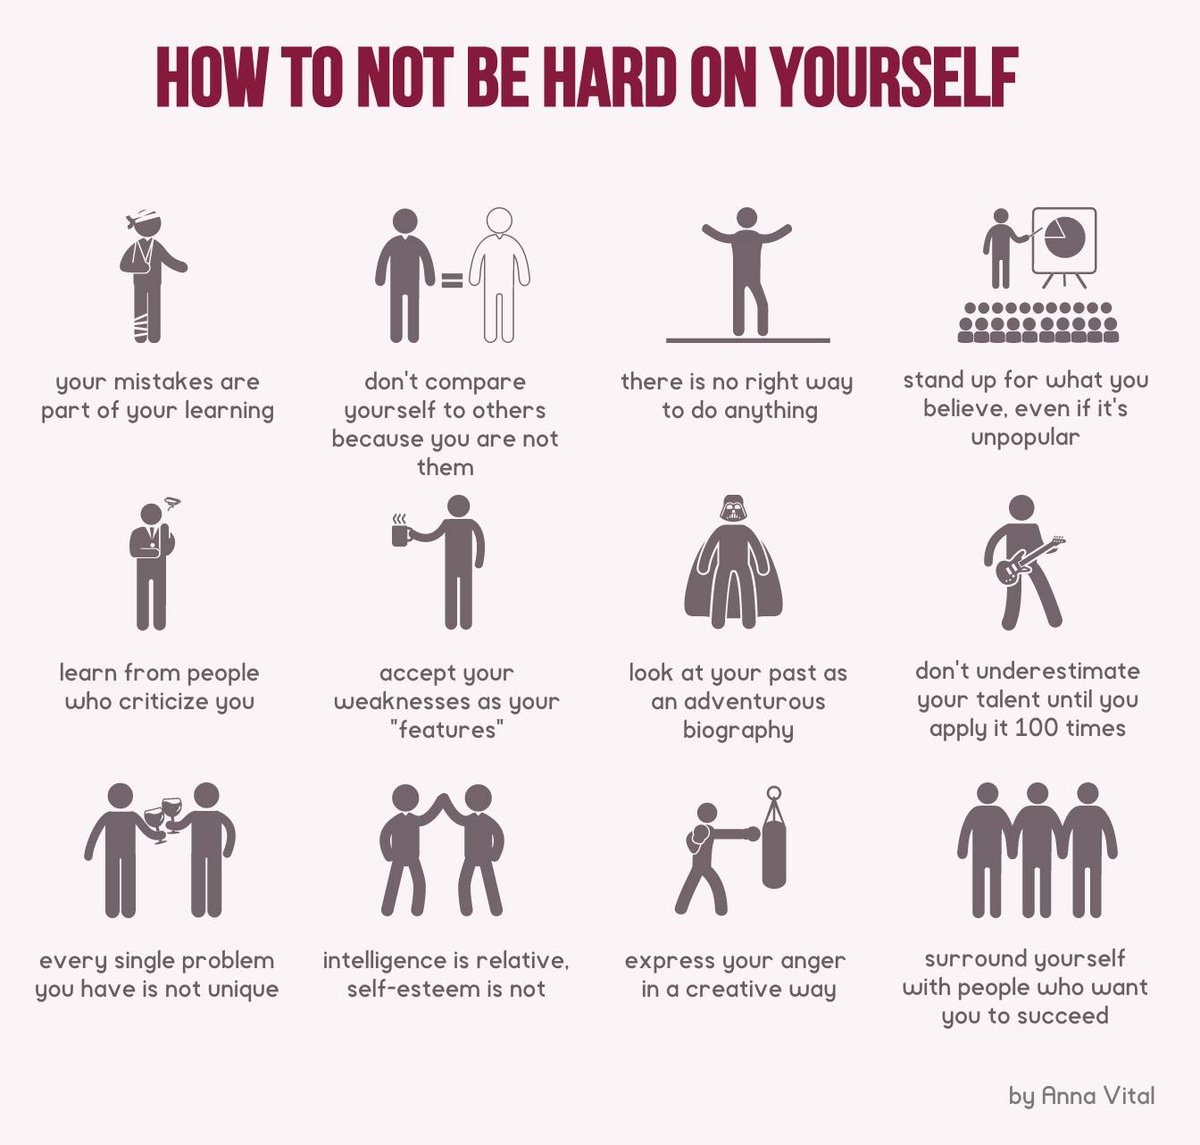 How to not be hard on yourself #ThoughtsVisualized http://t.co/2KpQ1geeAa